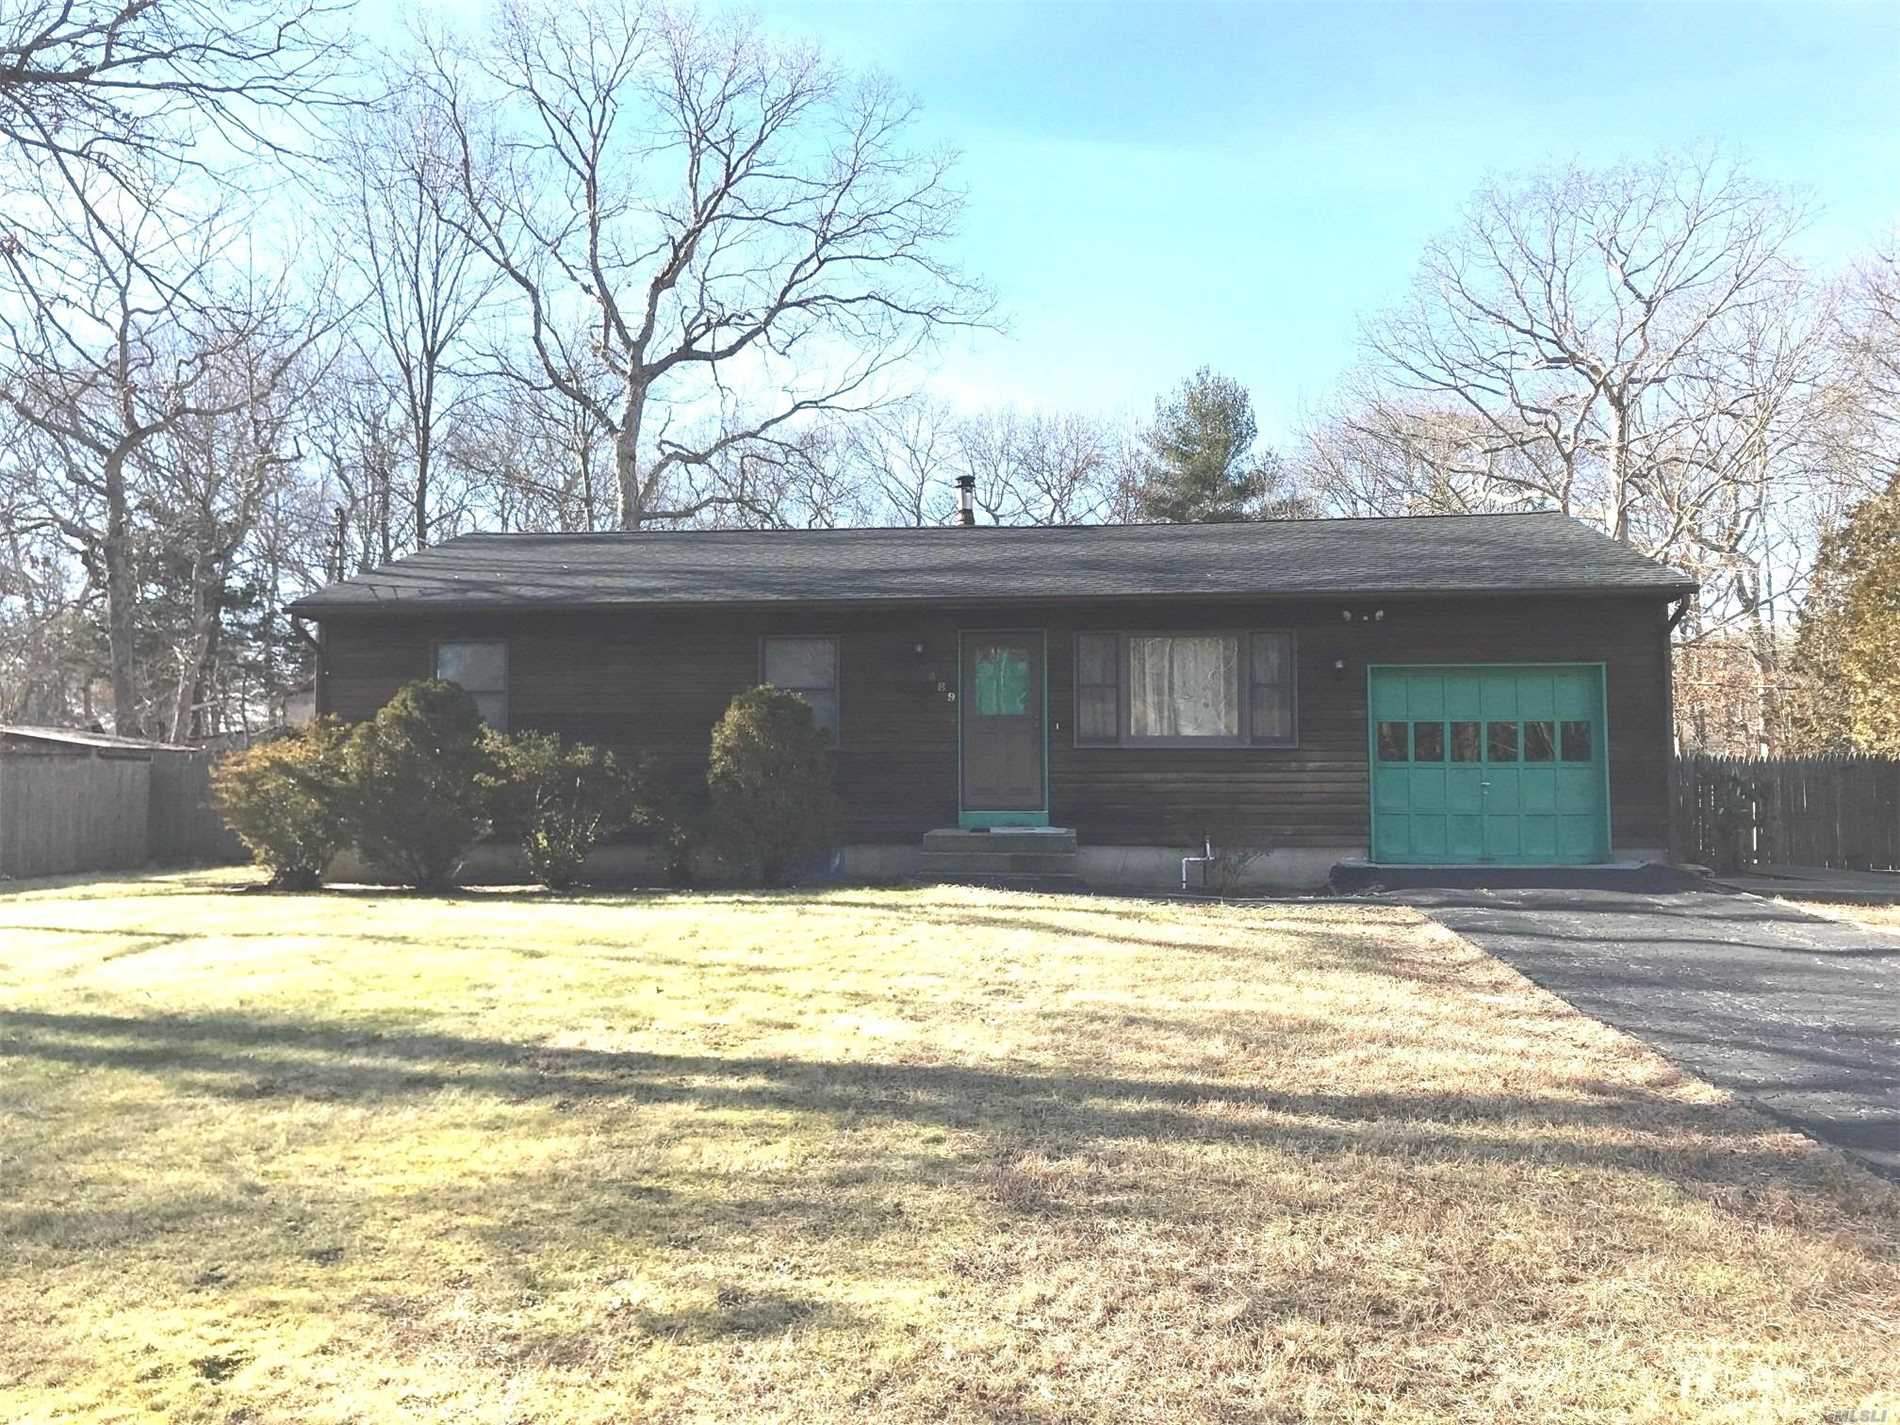 Super Nice Ranch-Very Clean And Fresh, New Carpet, Freshly Painted, Large Fenced Yad, 2 Decks, Use Of Garage And No Use Of Shed. Must Have Credit Report And References There Is A Dark Blue Carpet That Is A Runner On Living Room And Hall To Protect The New Carpet